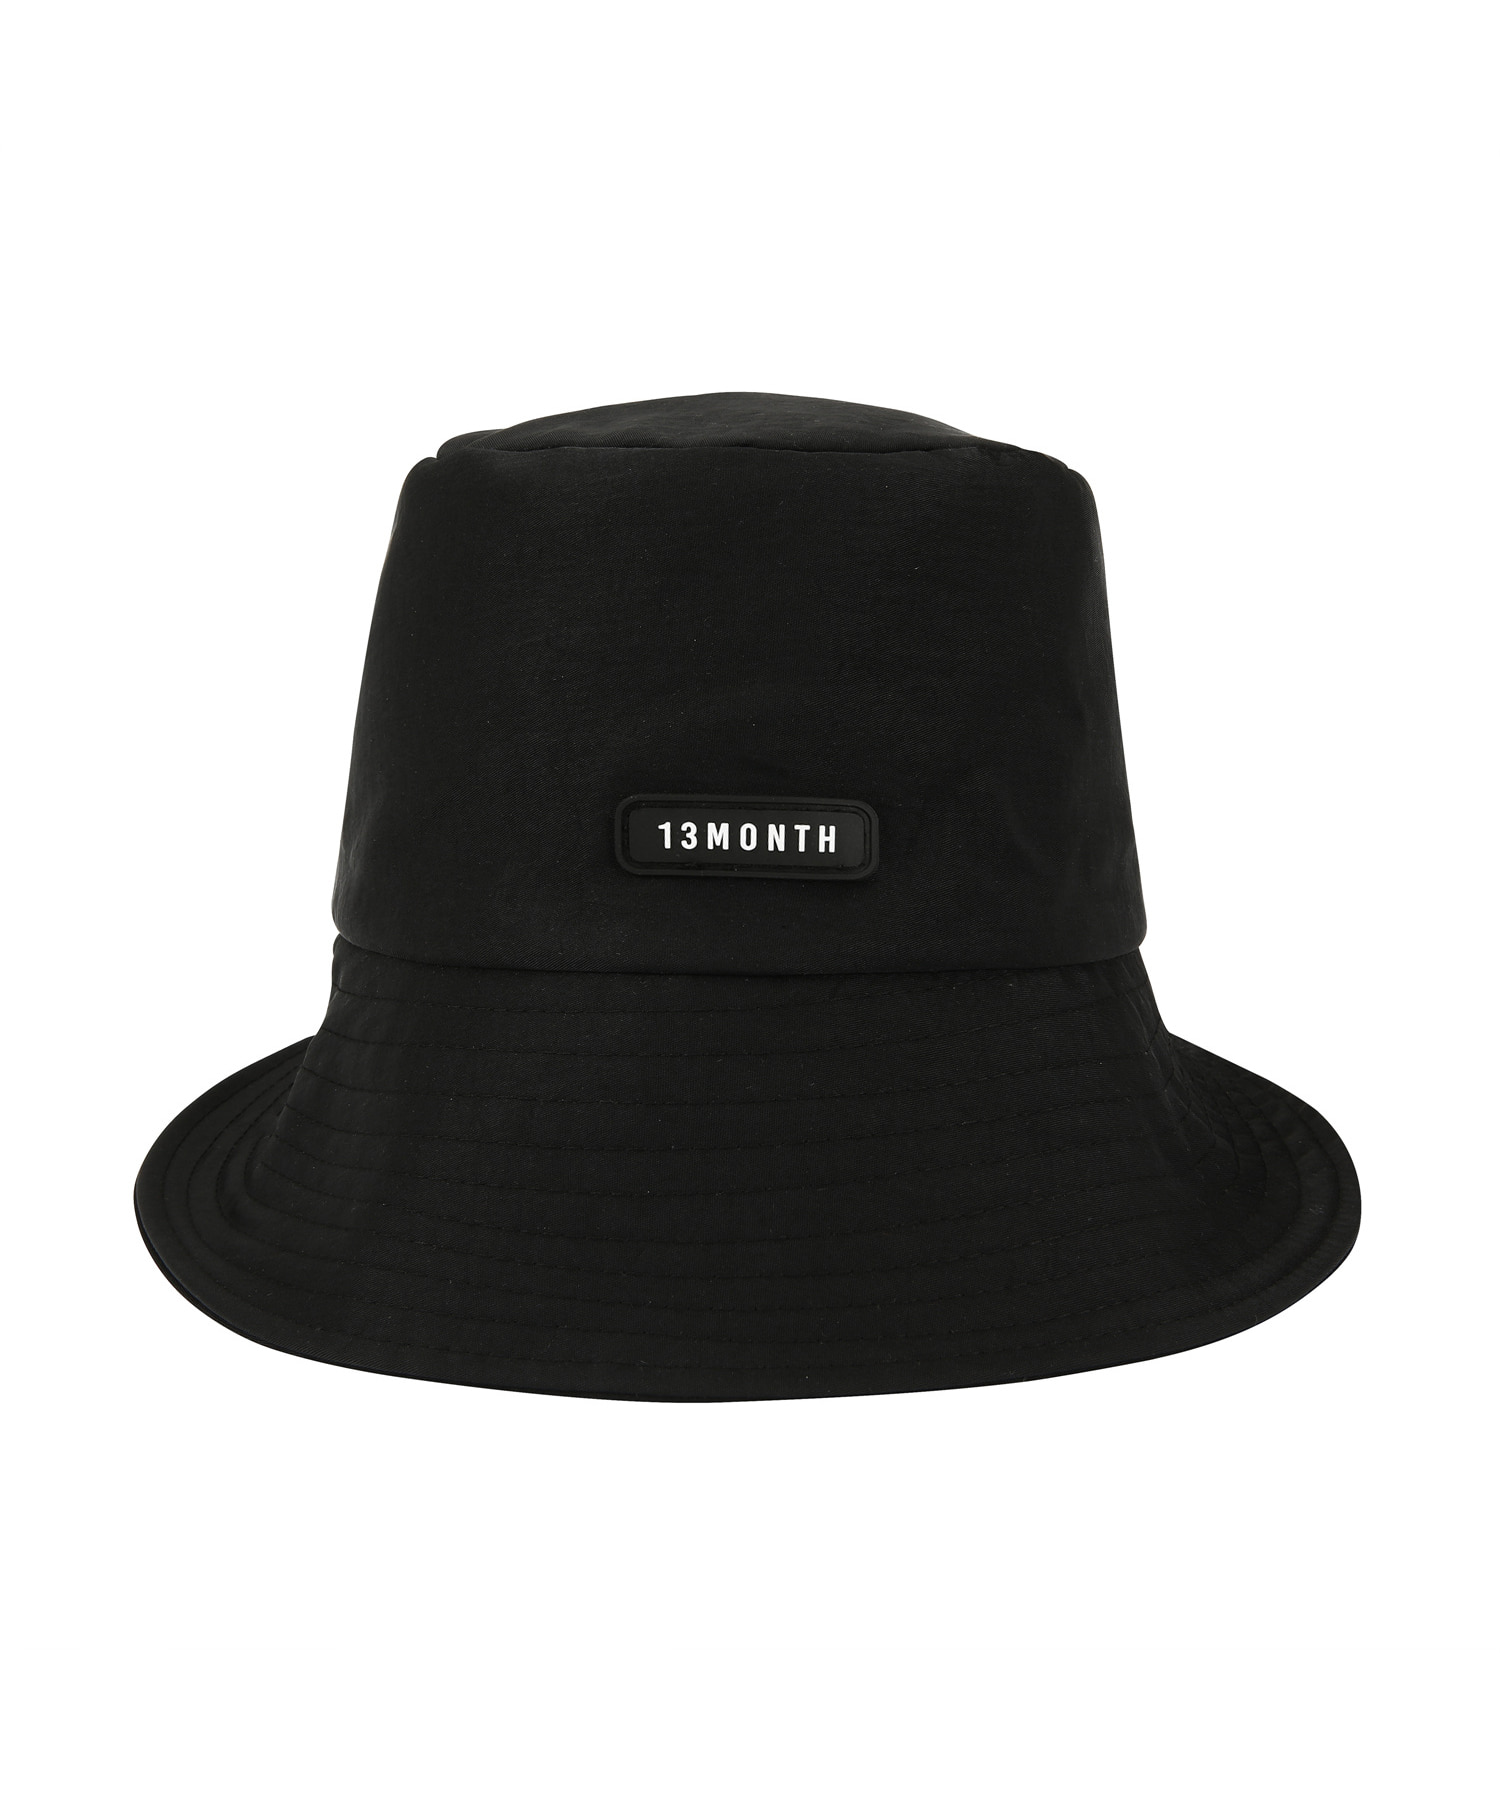 [써틴먼스] LOGO BUCKET HAT (BLACK)